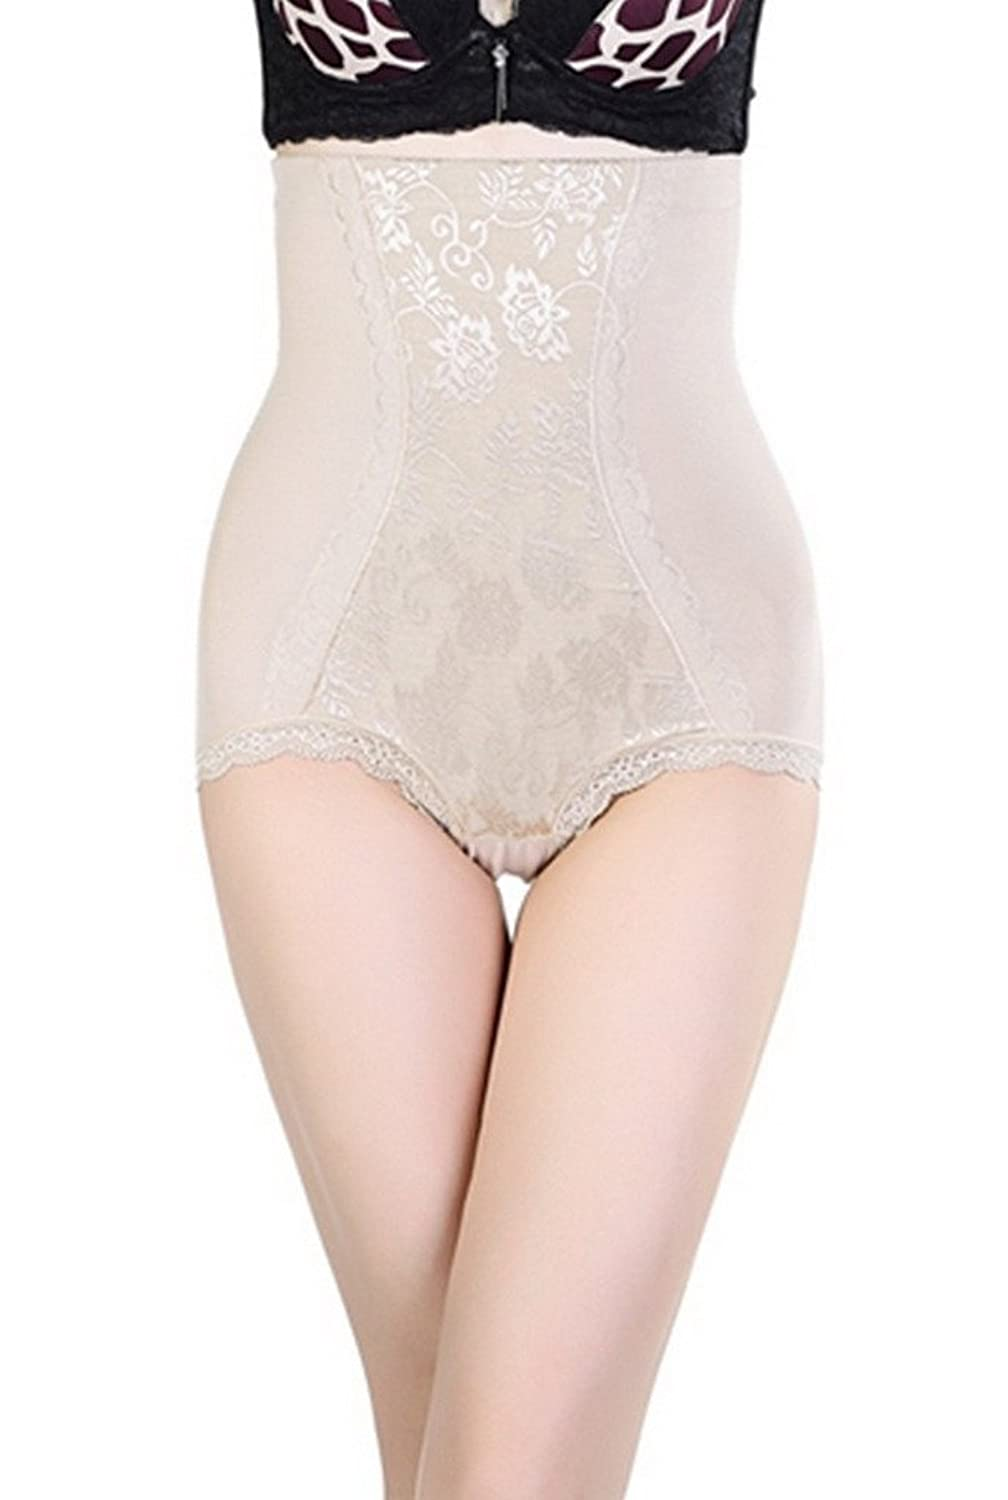 Smile YKK Sexy Figur-Body Frauen Miederpants Body sculpting Damen Unterwäsche Hoch Taille